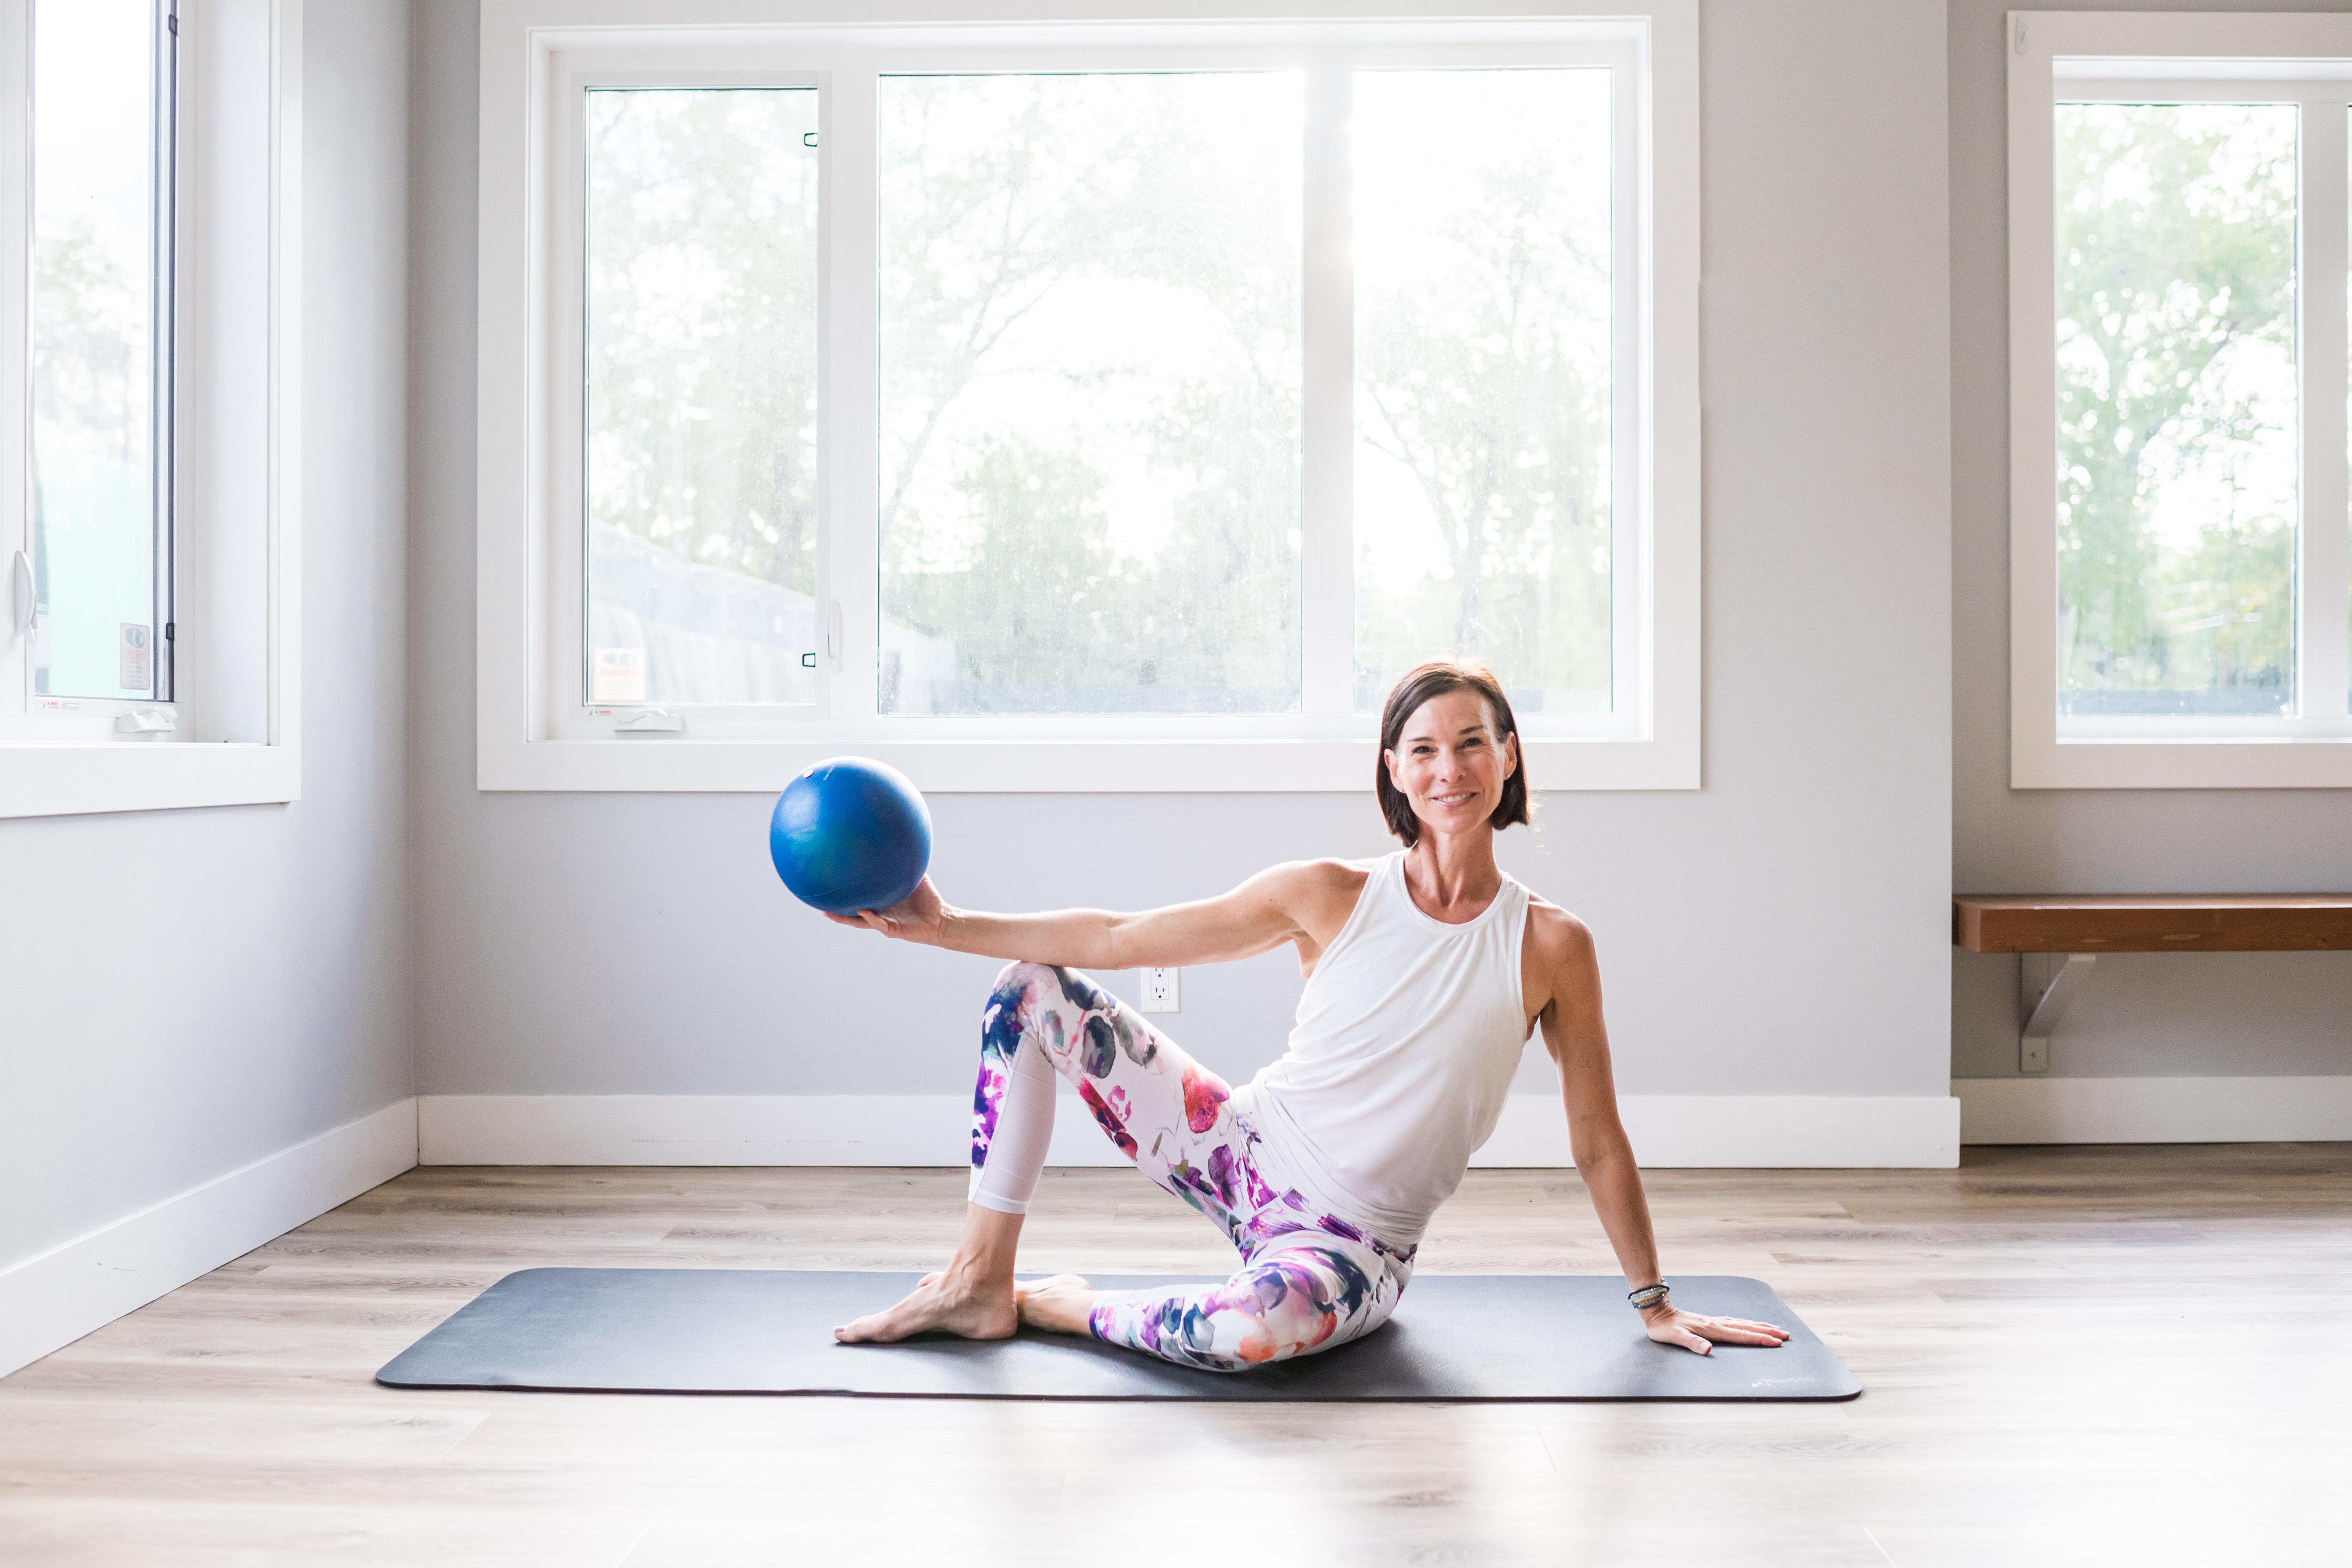 Pilates with Props - All Levels (M 9AM)